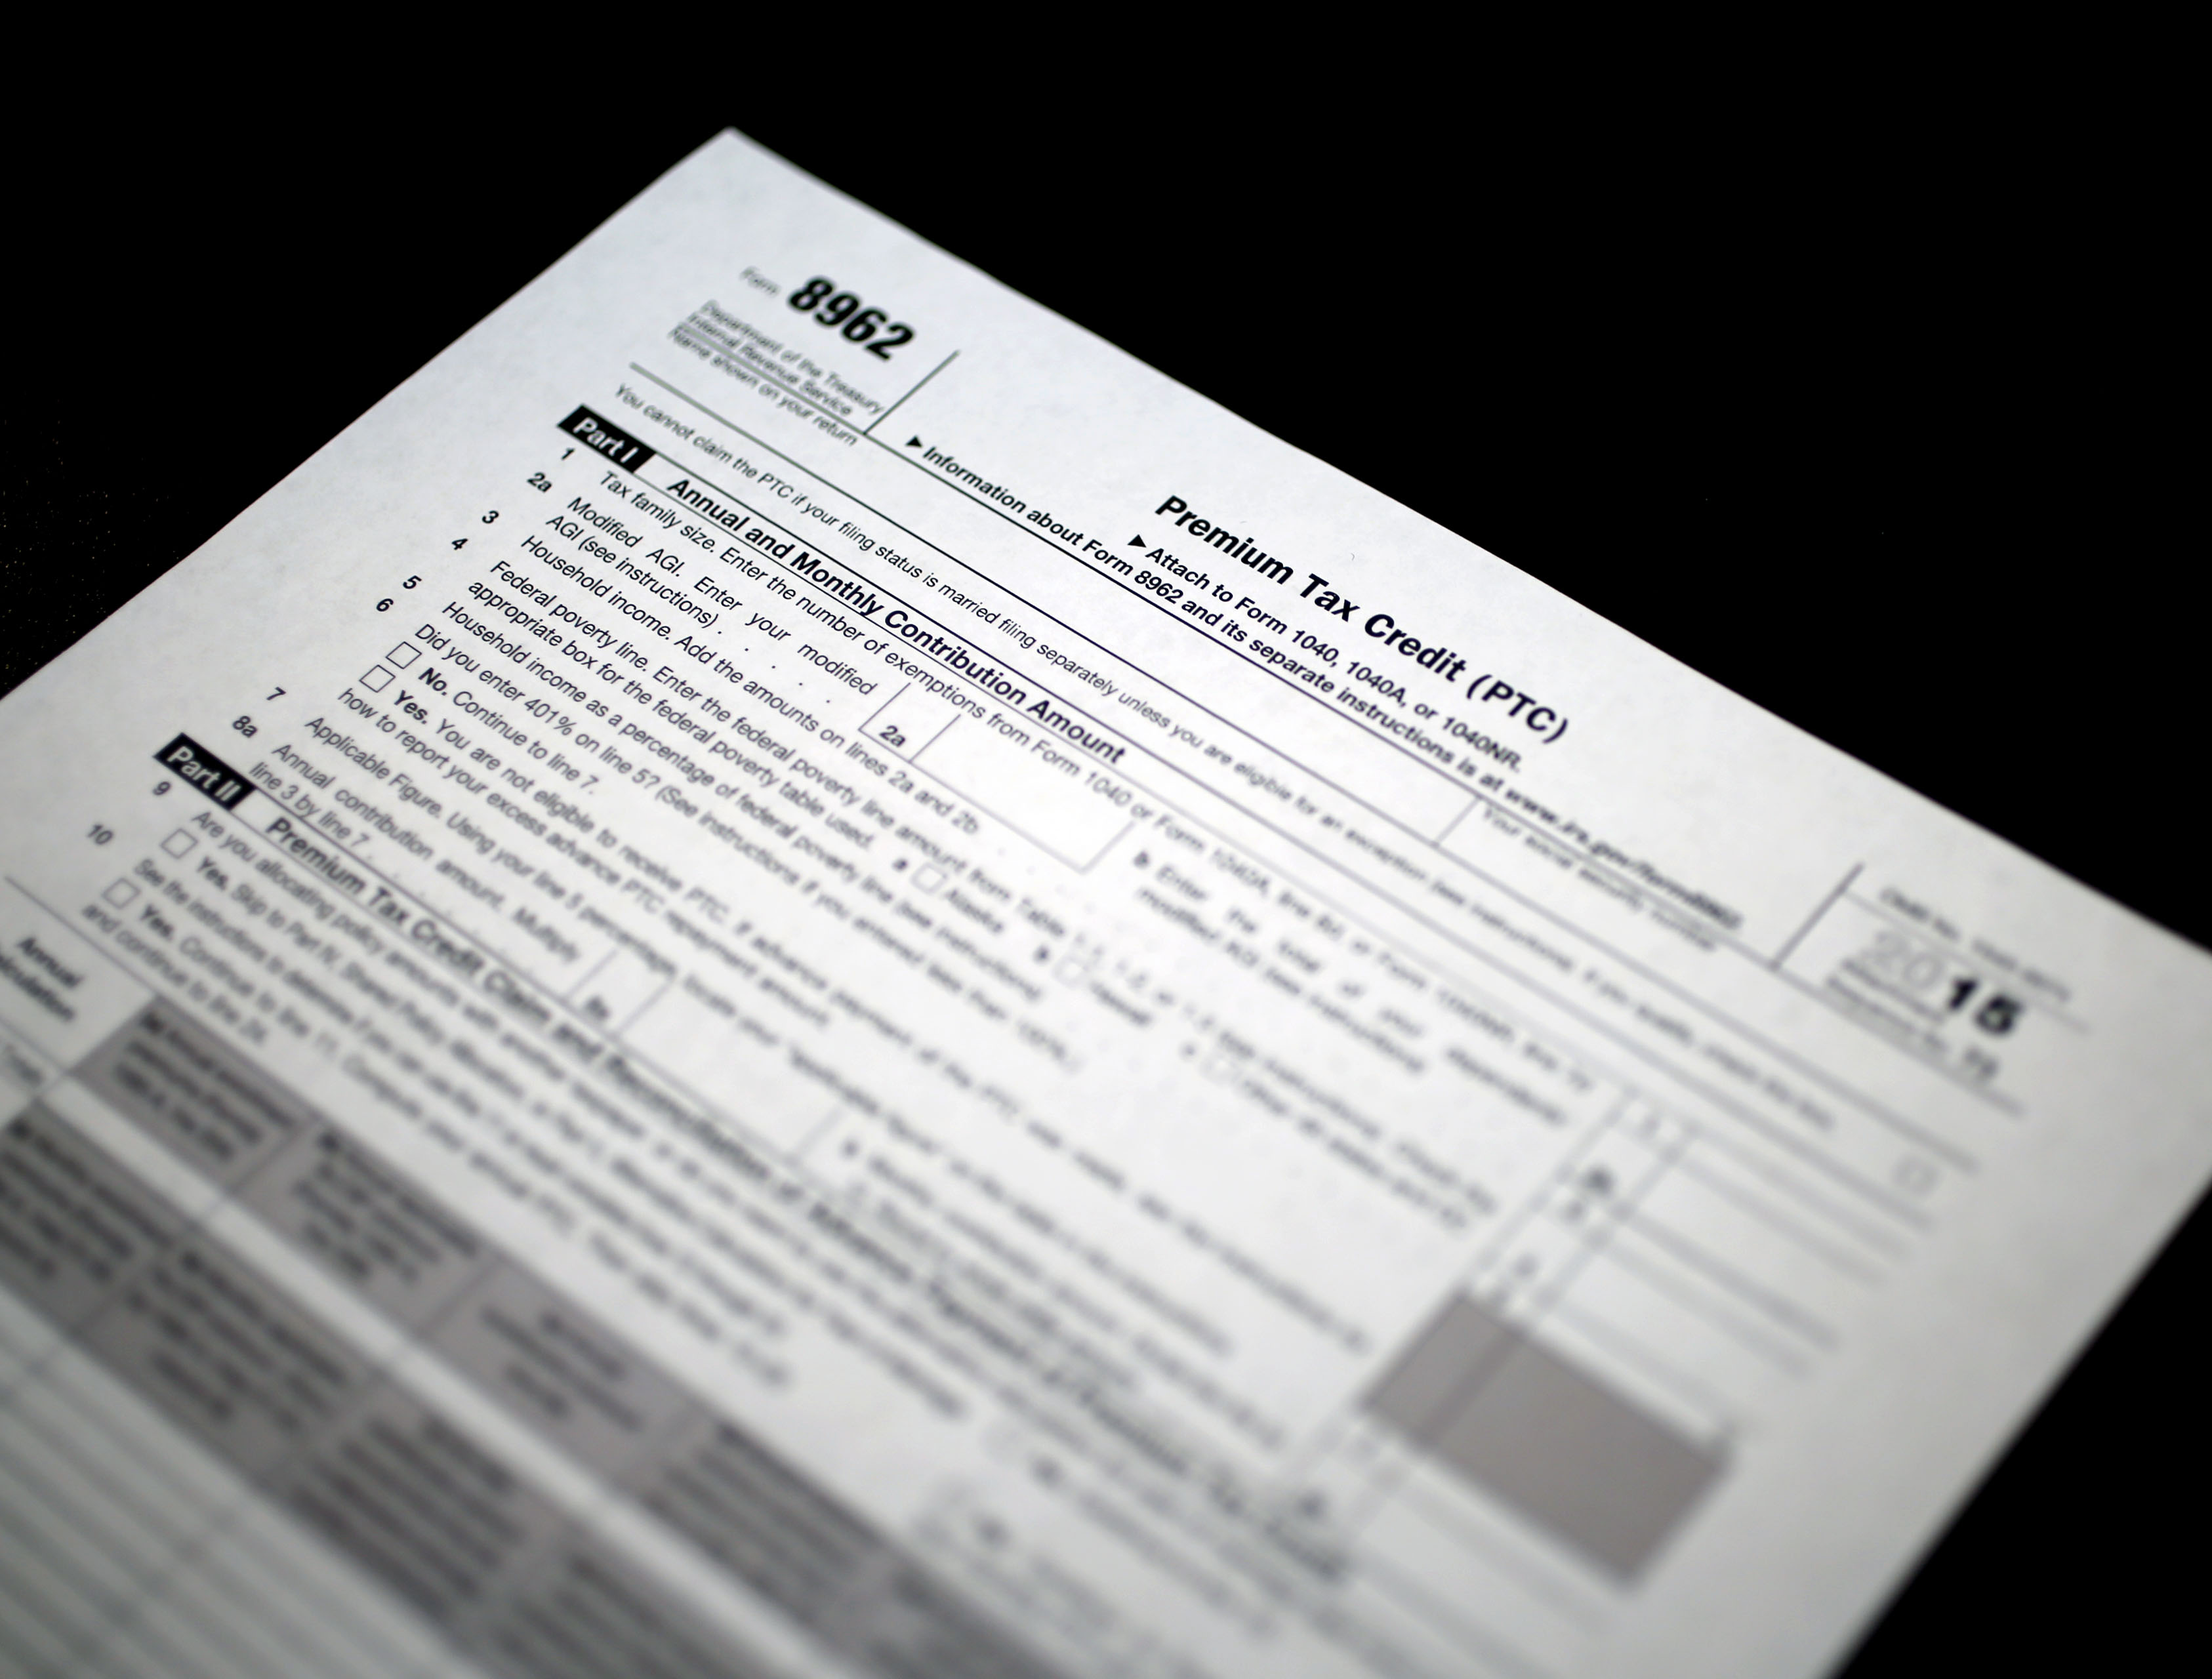 Tax refund delayed? You may need new IRS Form 8962